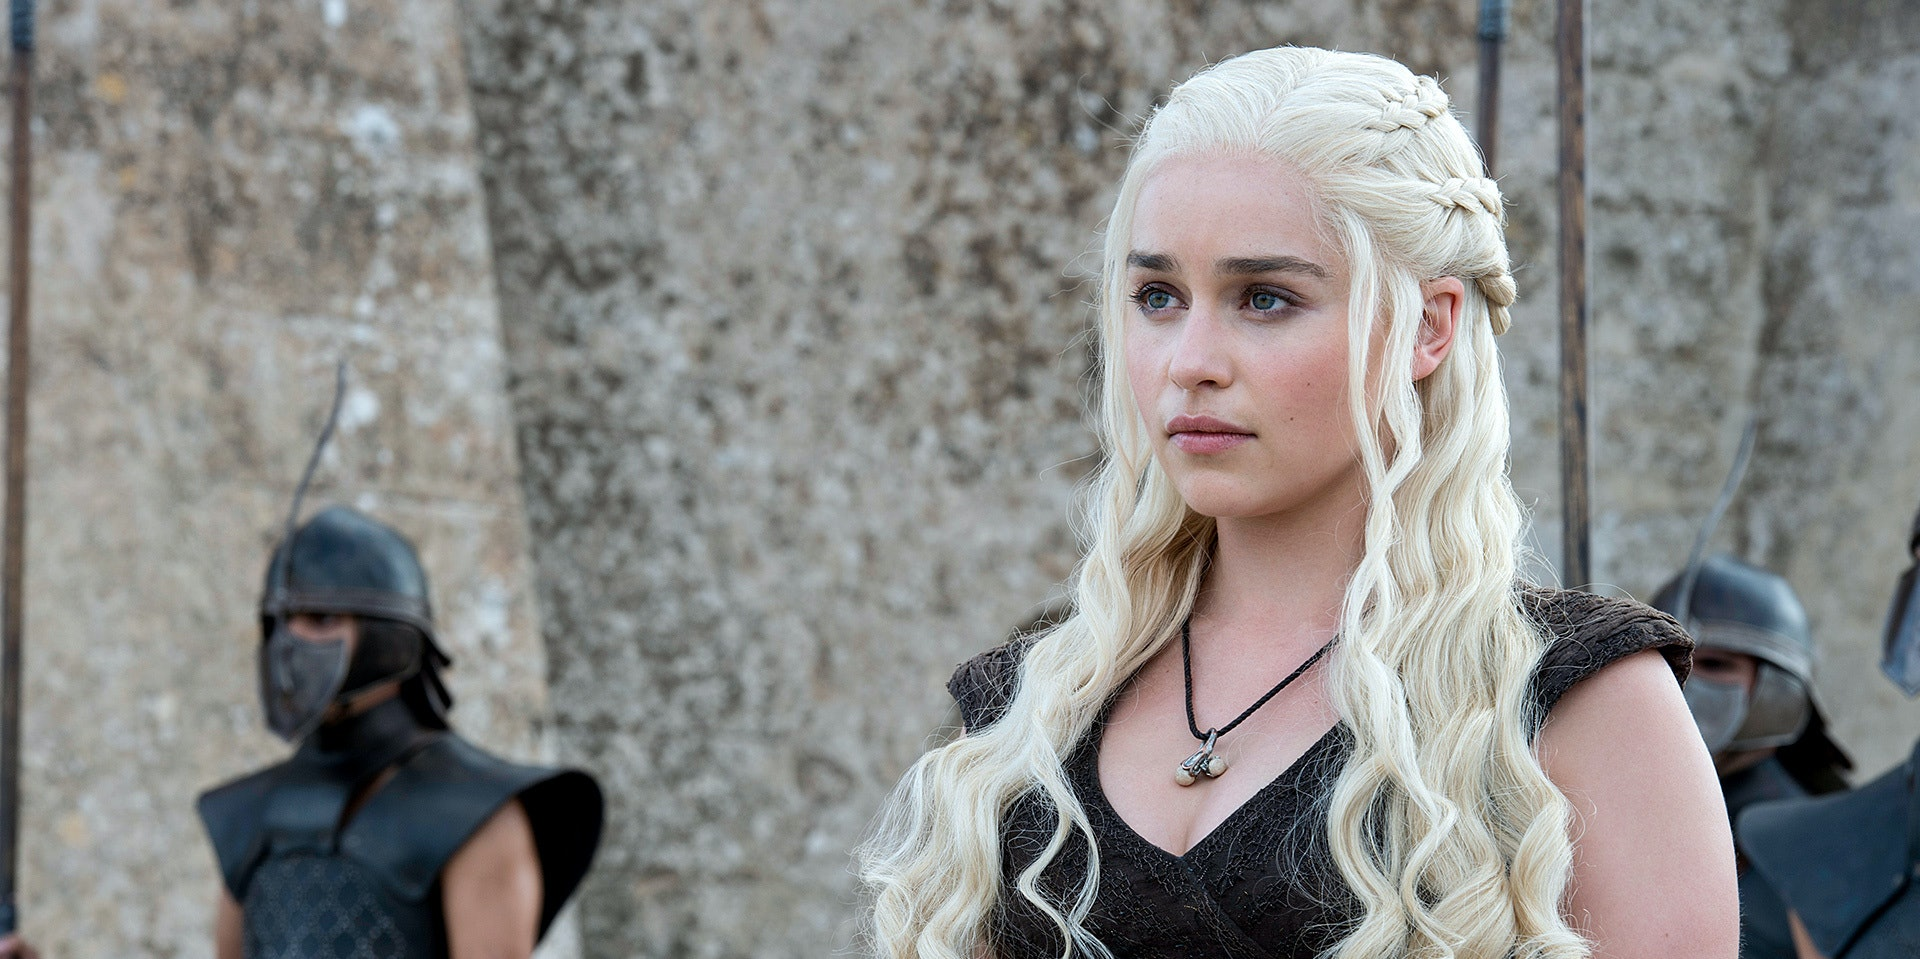 Daenerys Targaryen is the rightful queen in 'Game of Thrones' Season 7